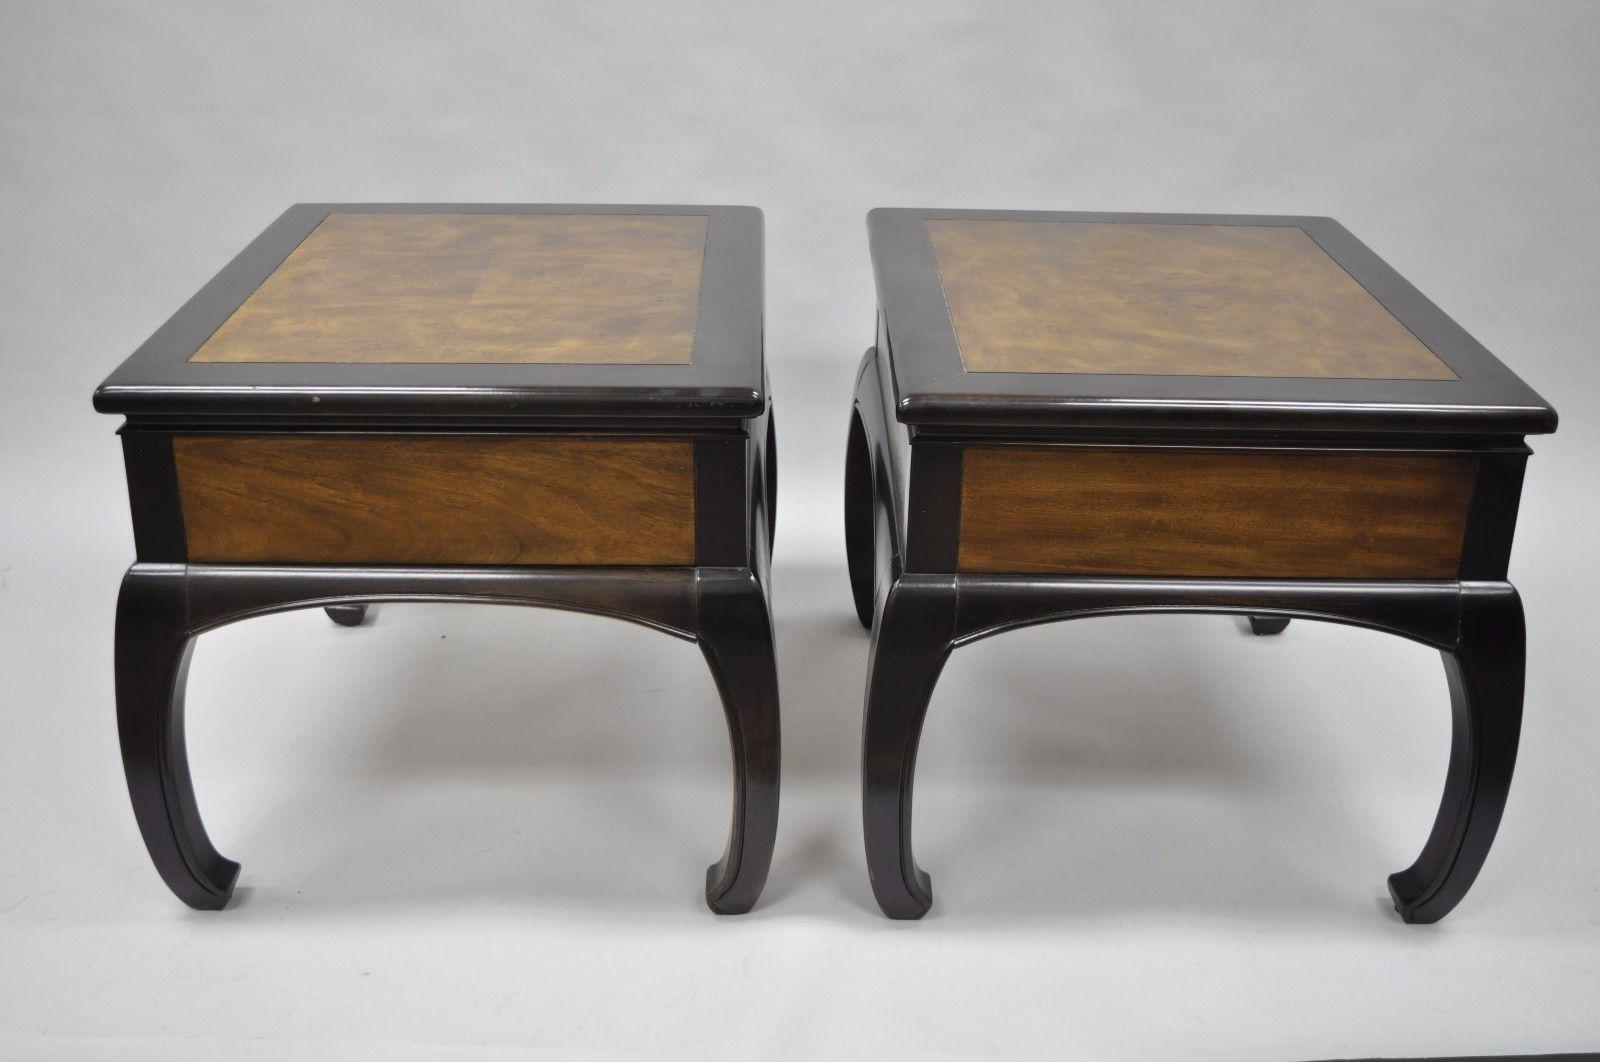 Asian Style End Tables Modern Coffee Tables and Accent Tables